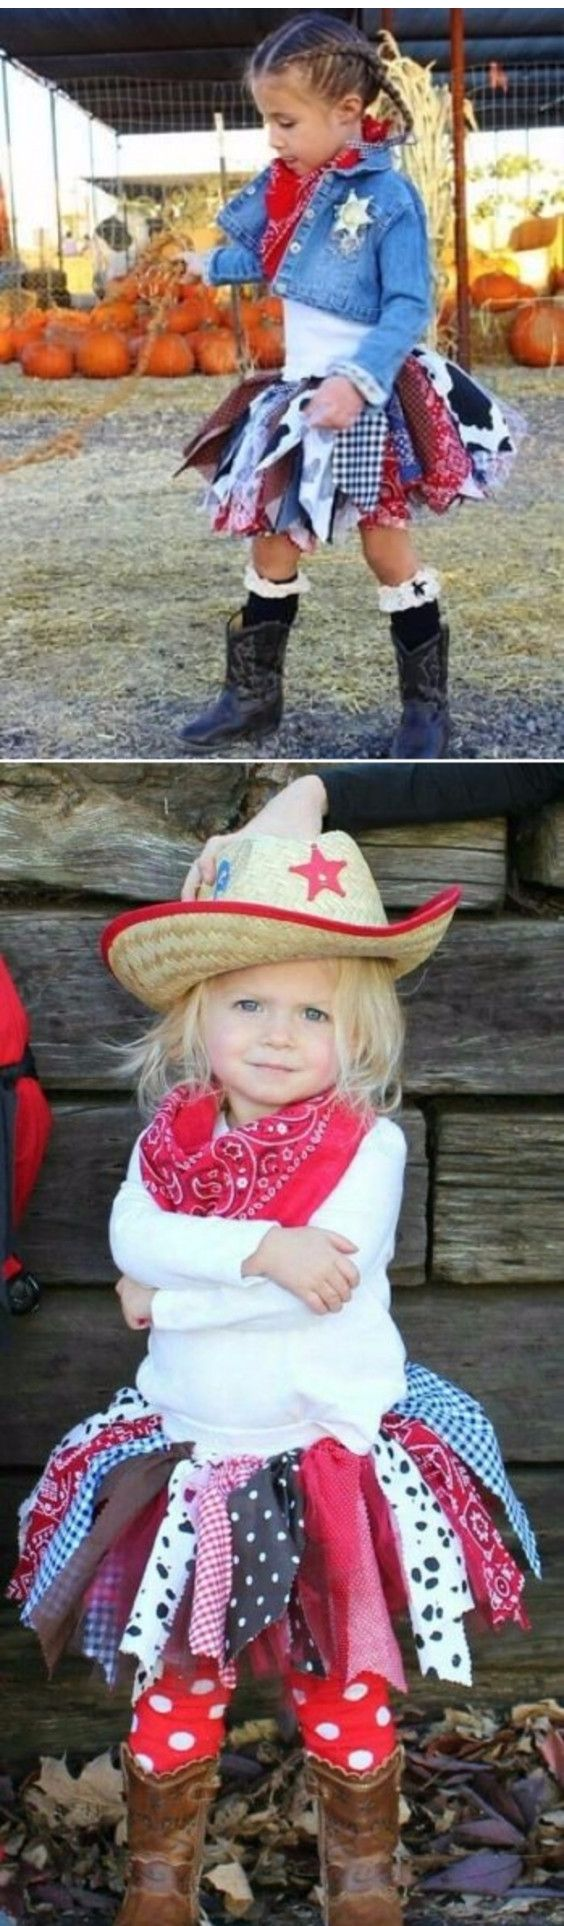 Cowgirl costume ideas for toddlers and little girls